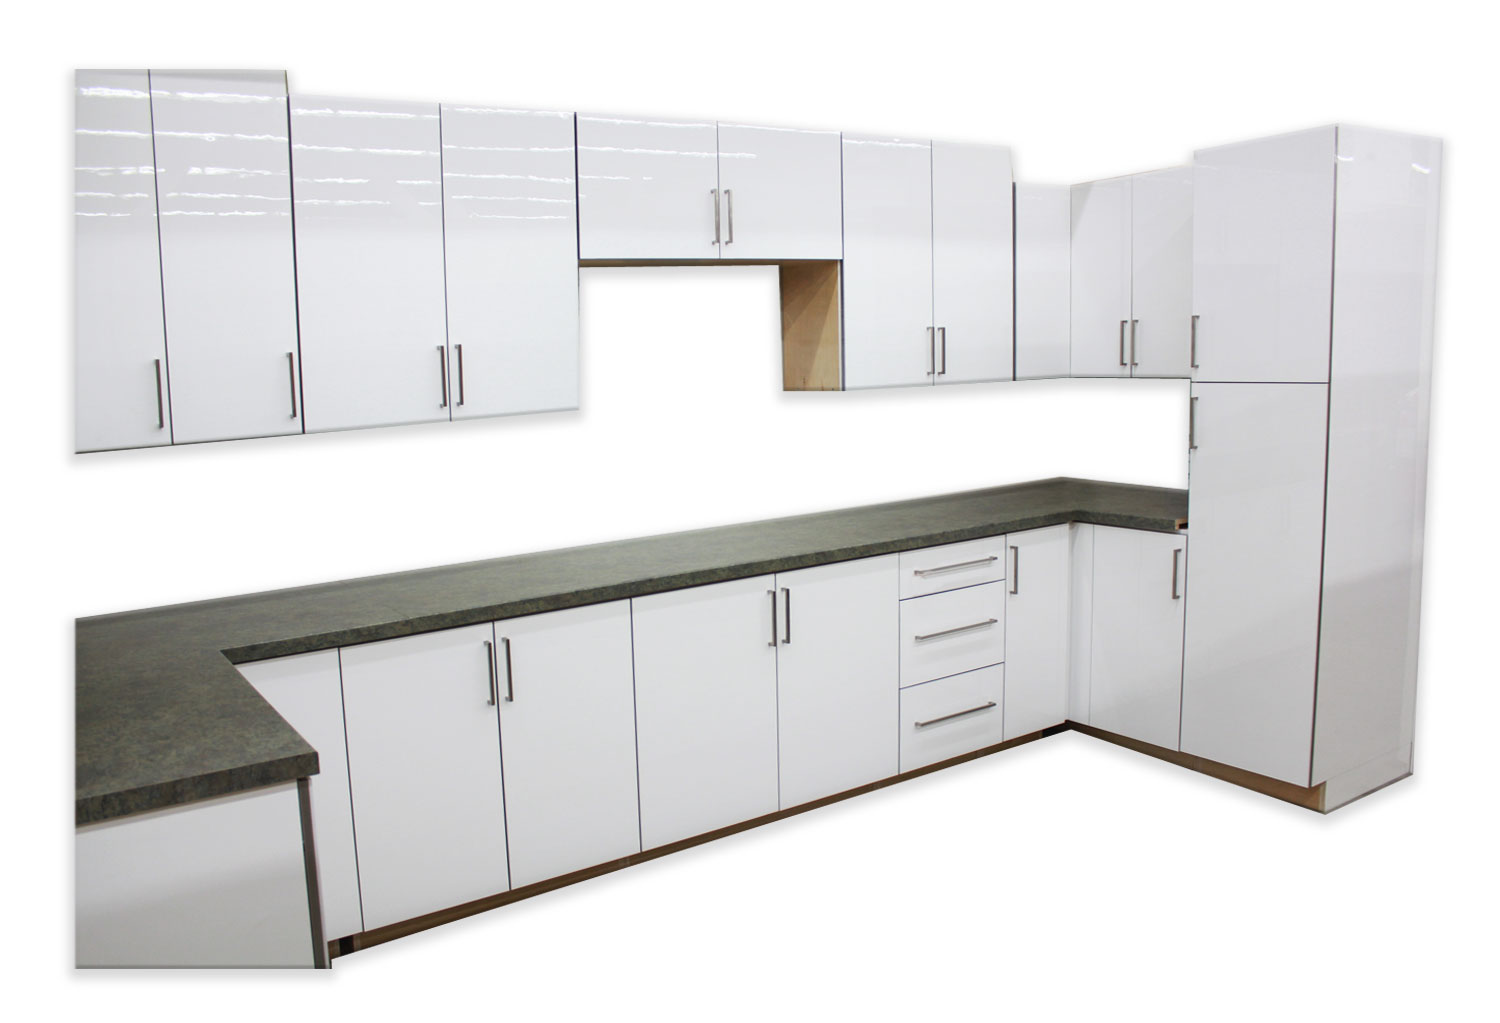 crystal_white_kitchen_cabinets-1.jpg